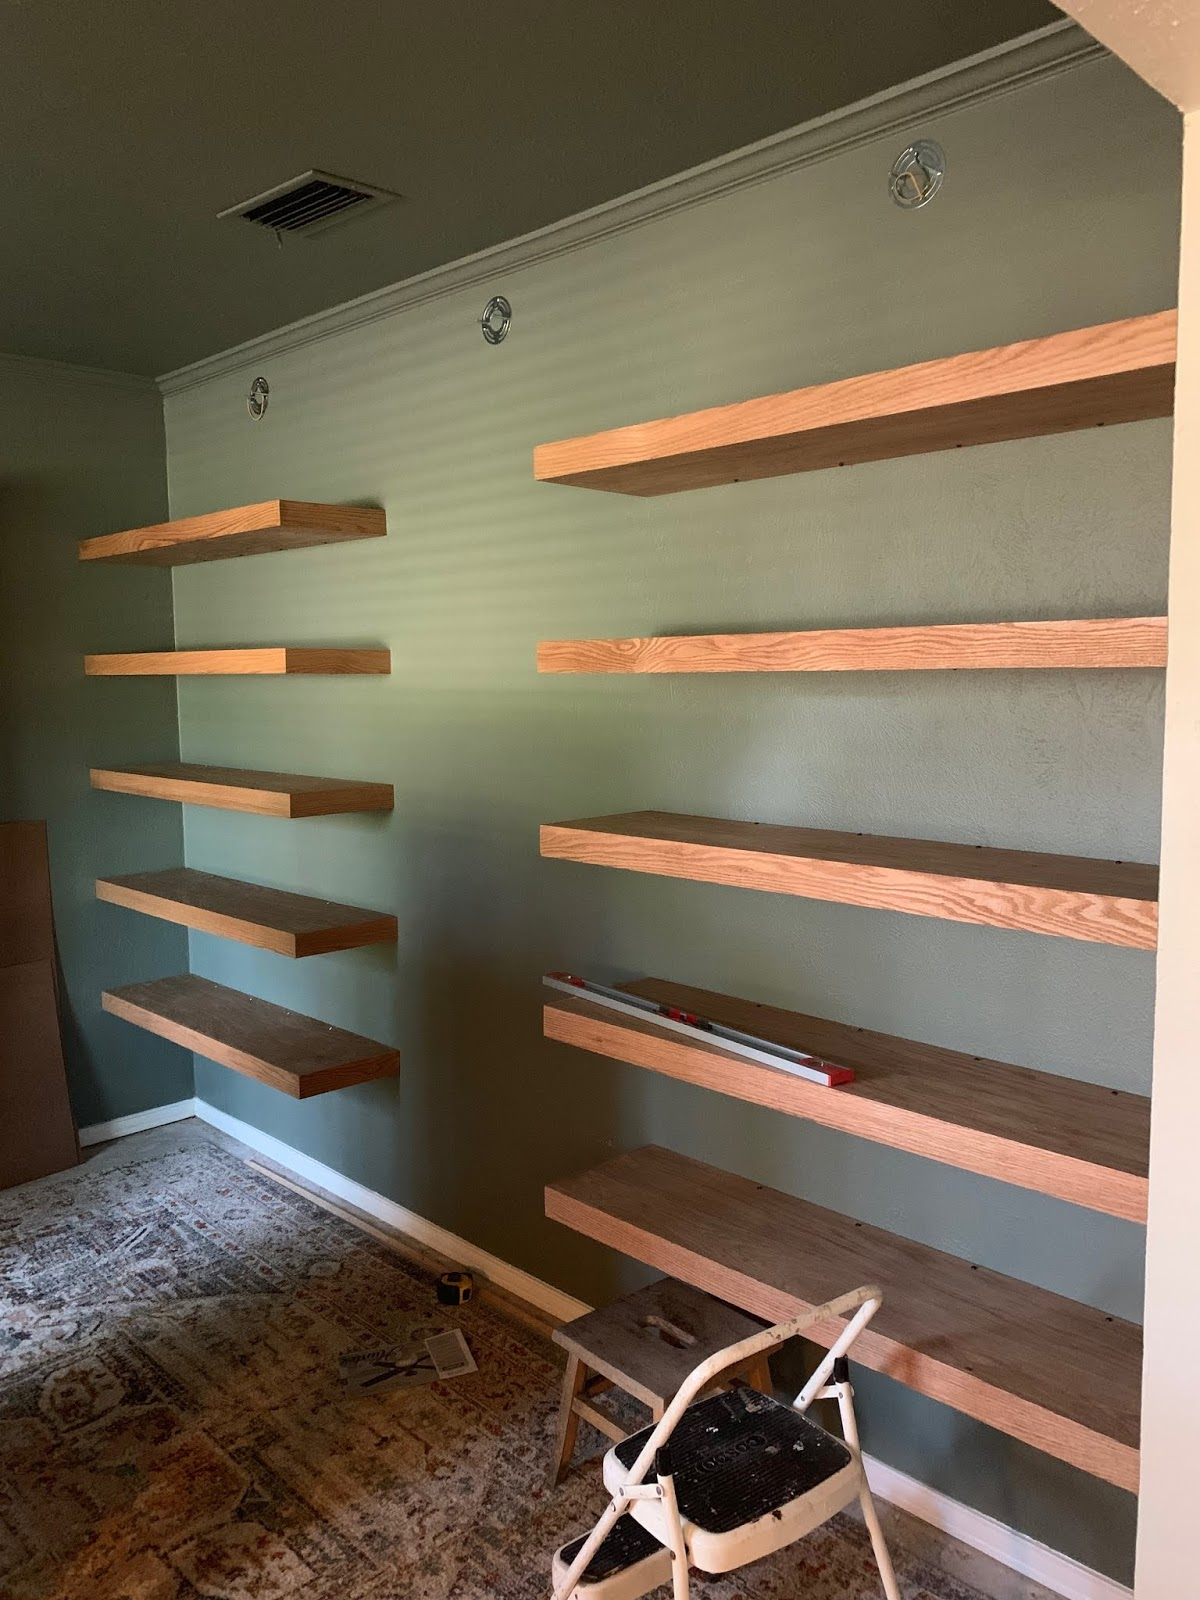 It's week 4 of the One Room Challenge! Things are coming together in our reading room! It's going to be great! | House Homemade